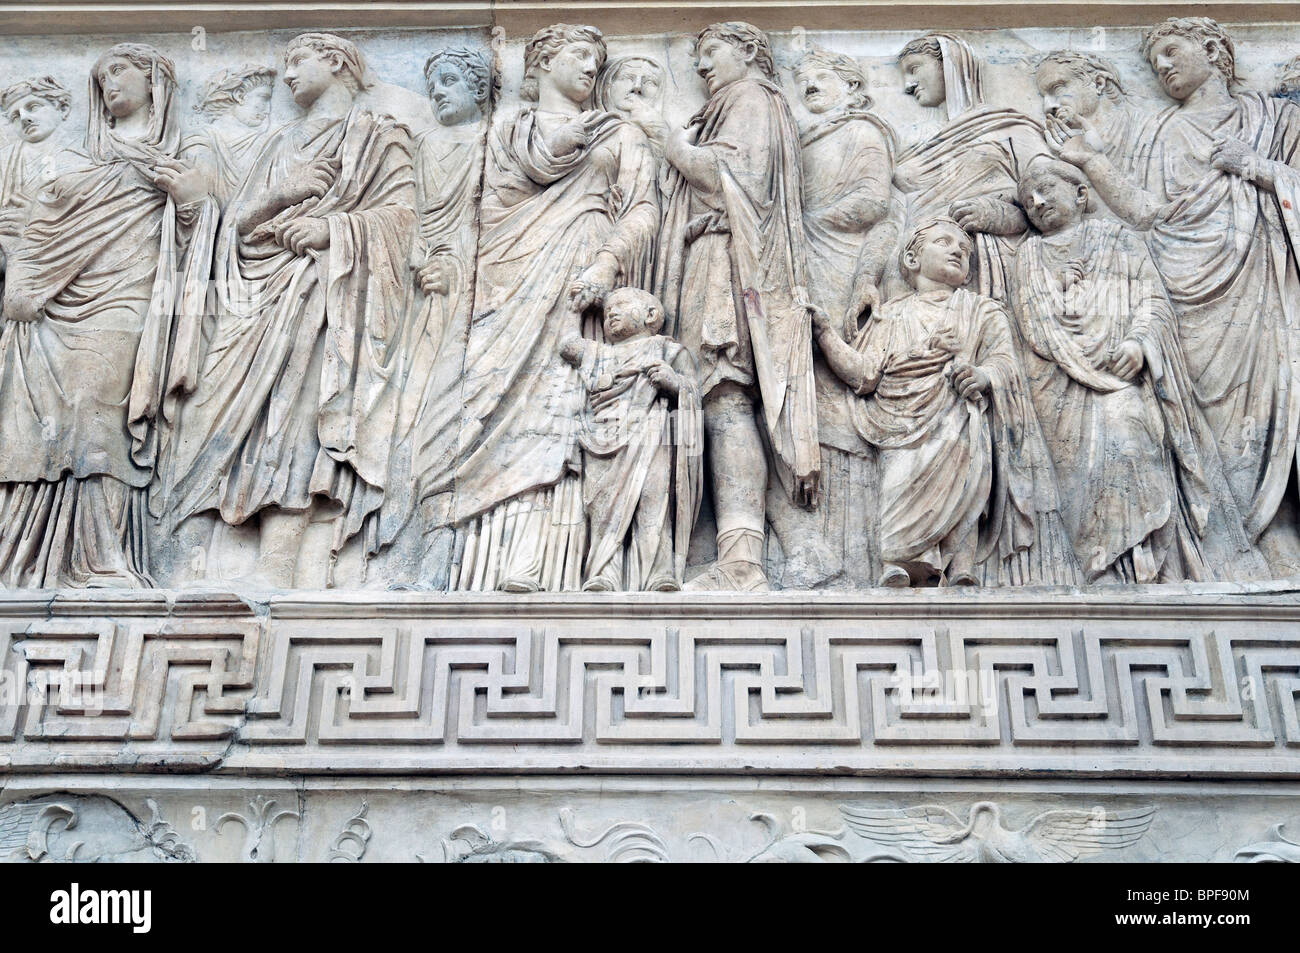 Processional frieze showing Augustus as high priest of Rome, accompanied by members of his family, Ara Pacis, Rome, - Stock Image